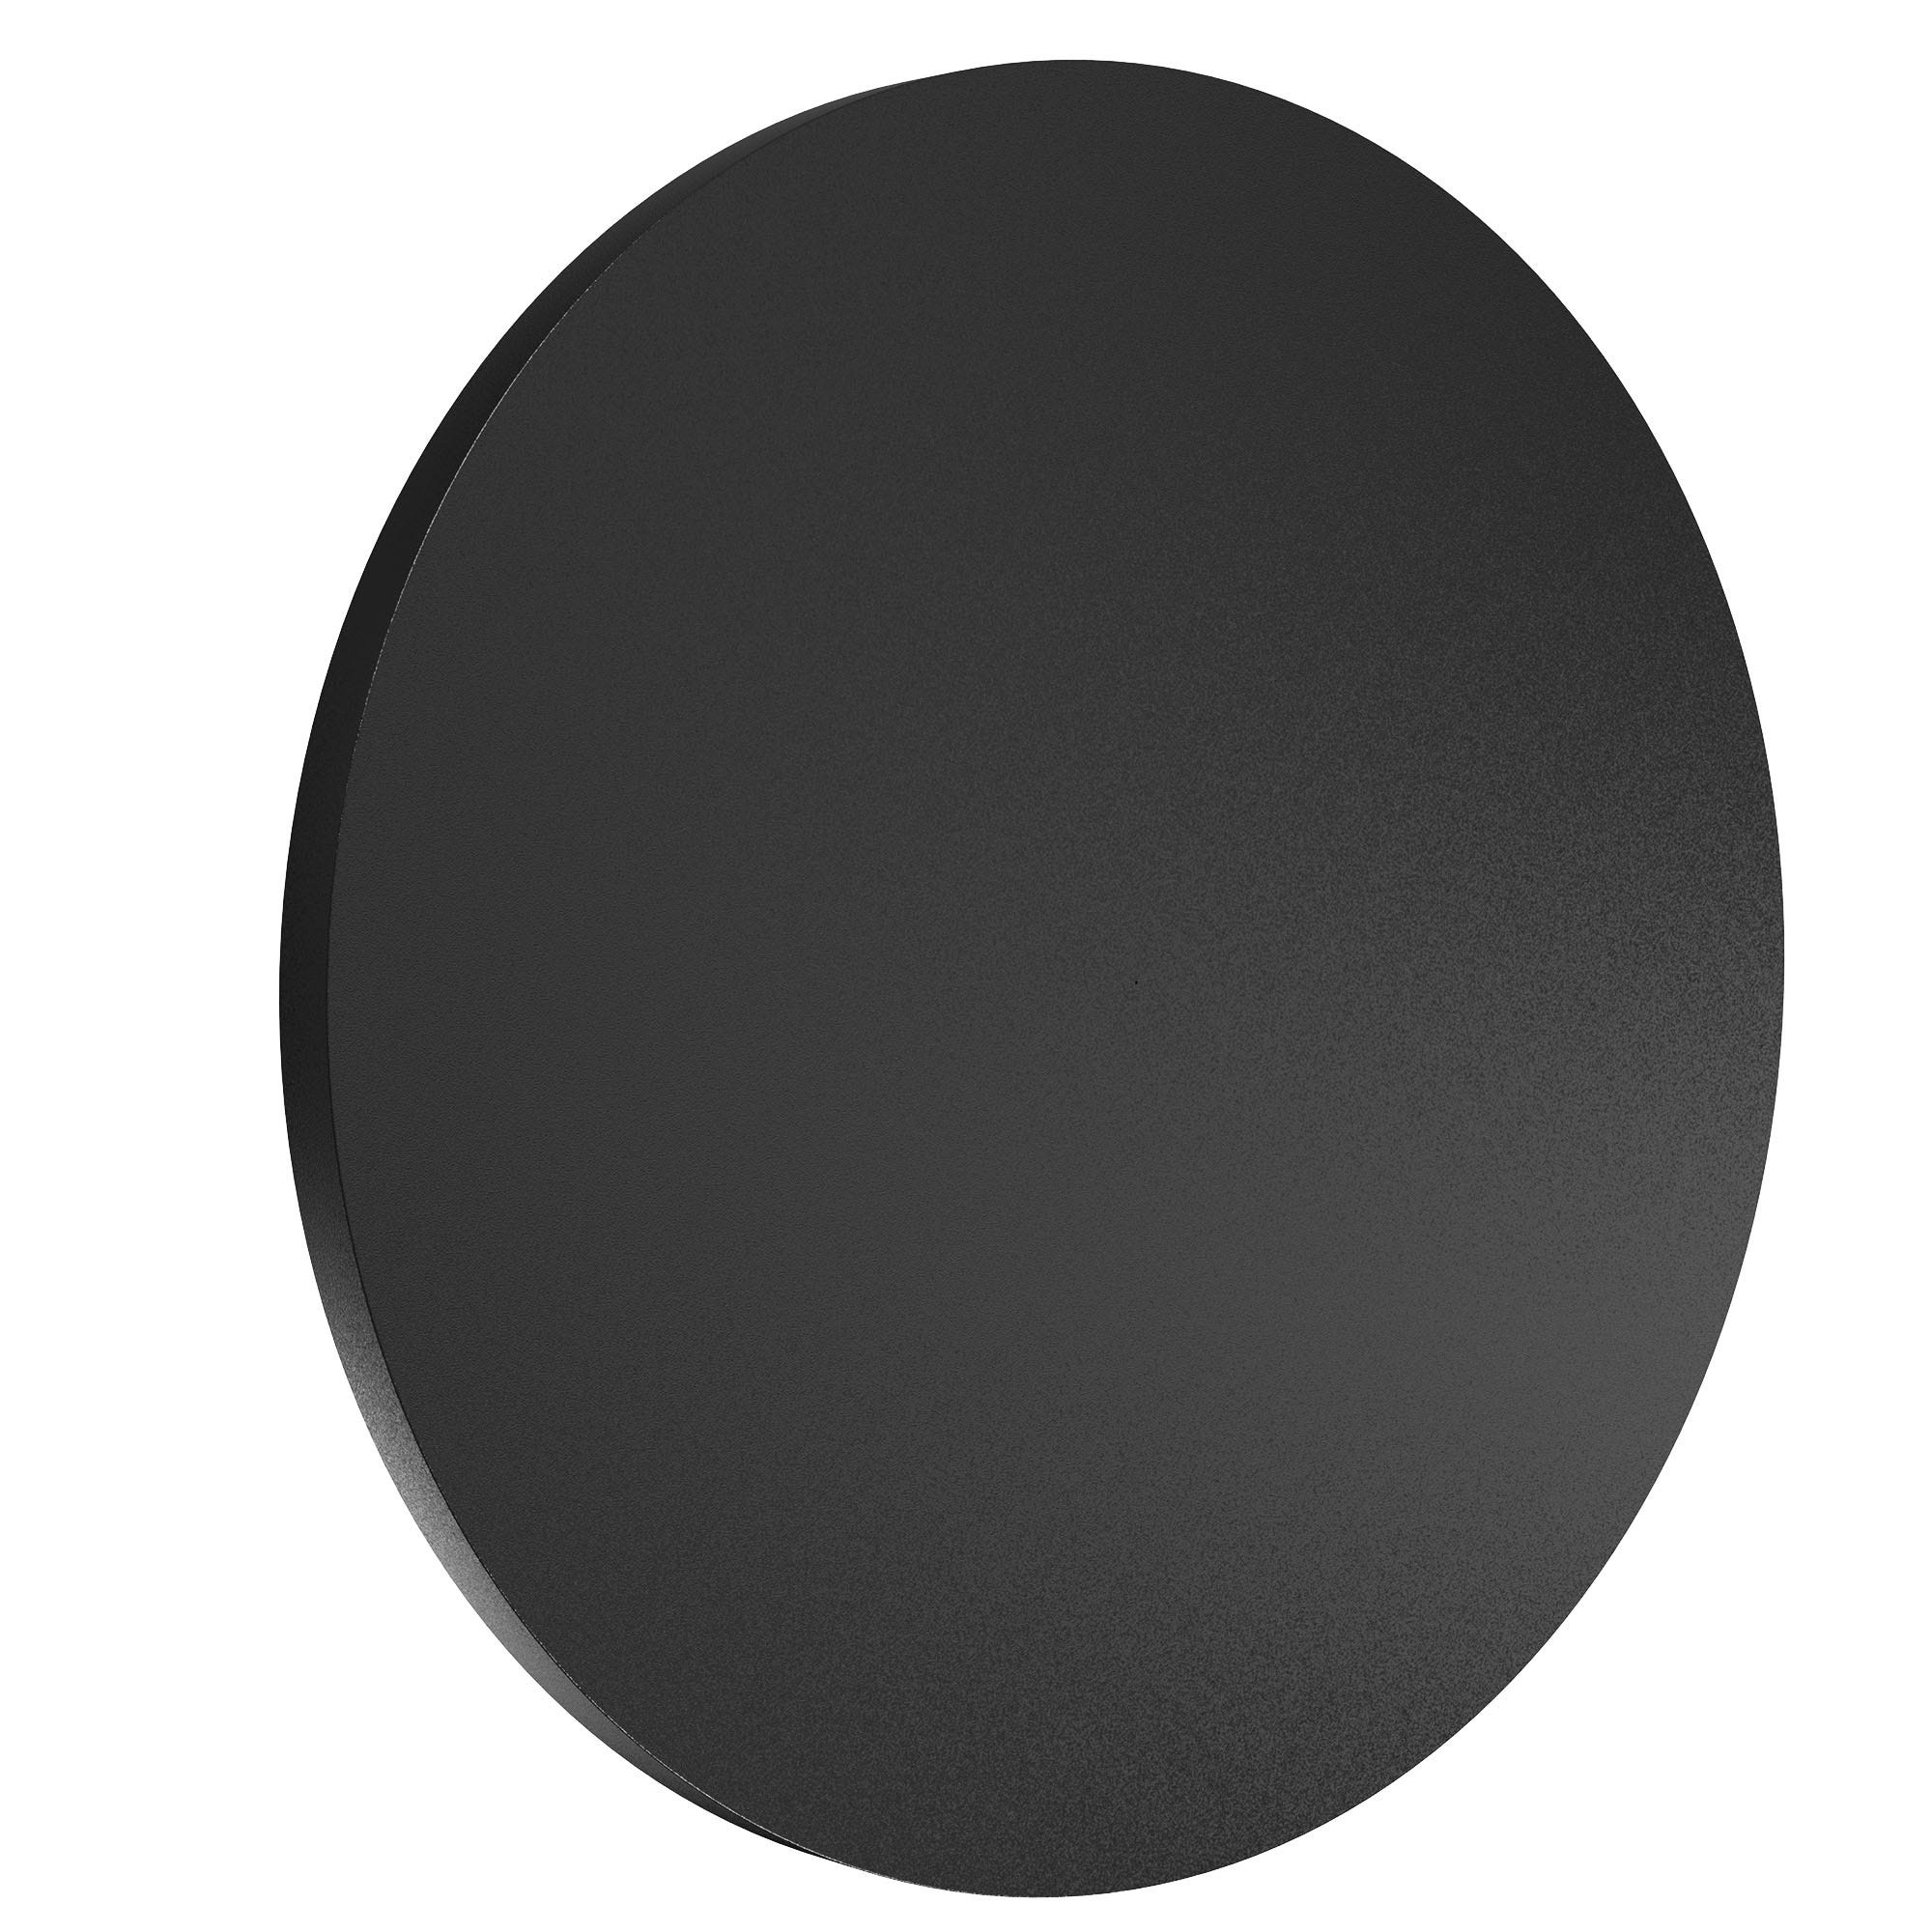 As Shown: Camouflage Wall Light Deep Black.